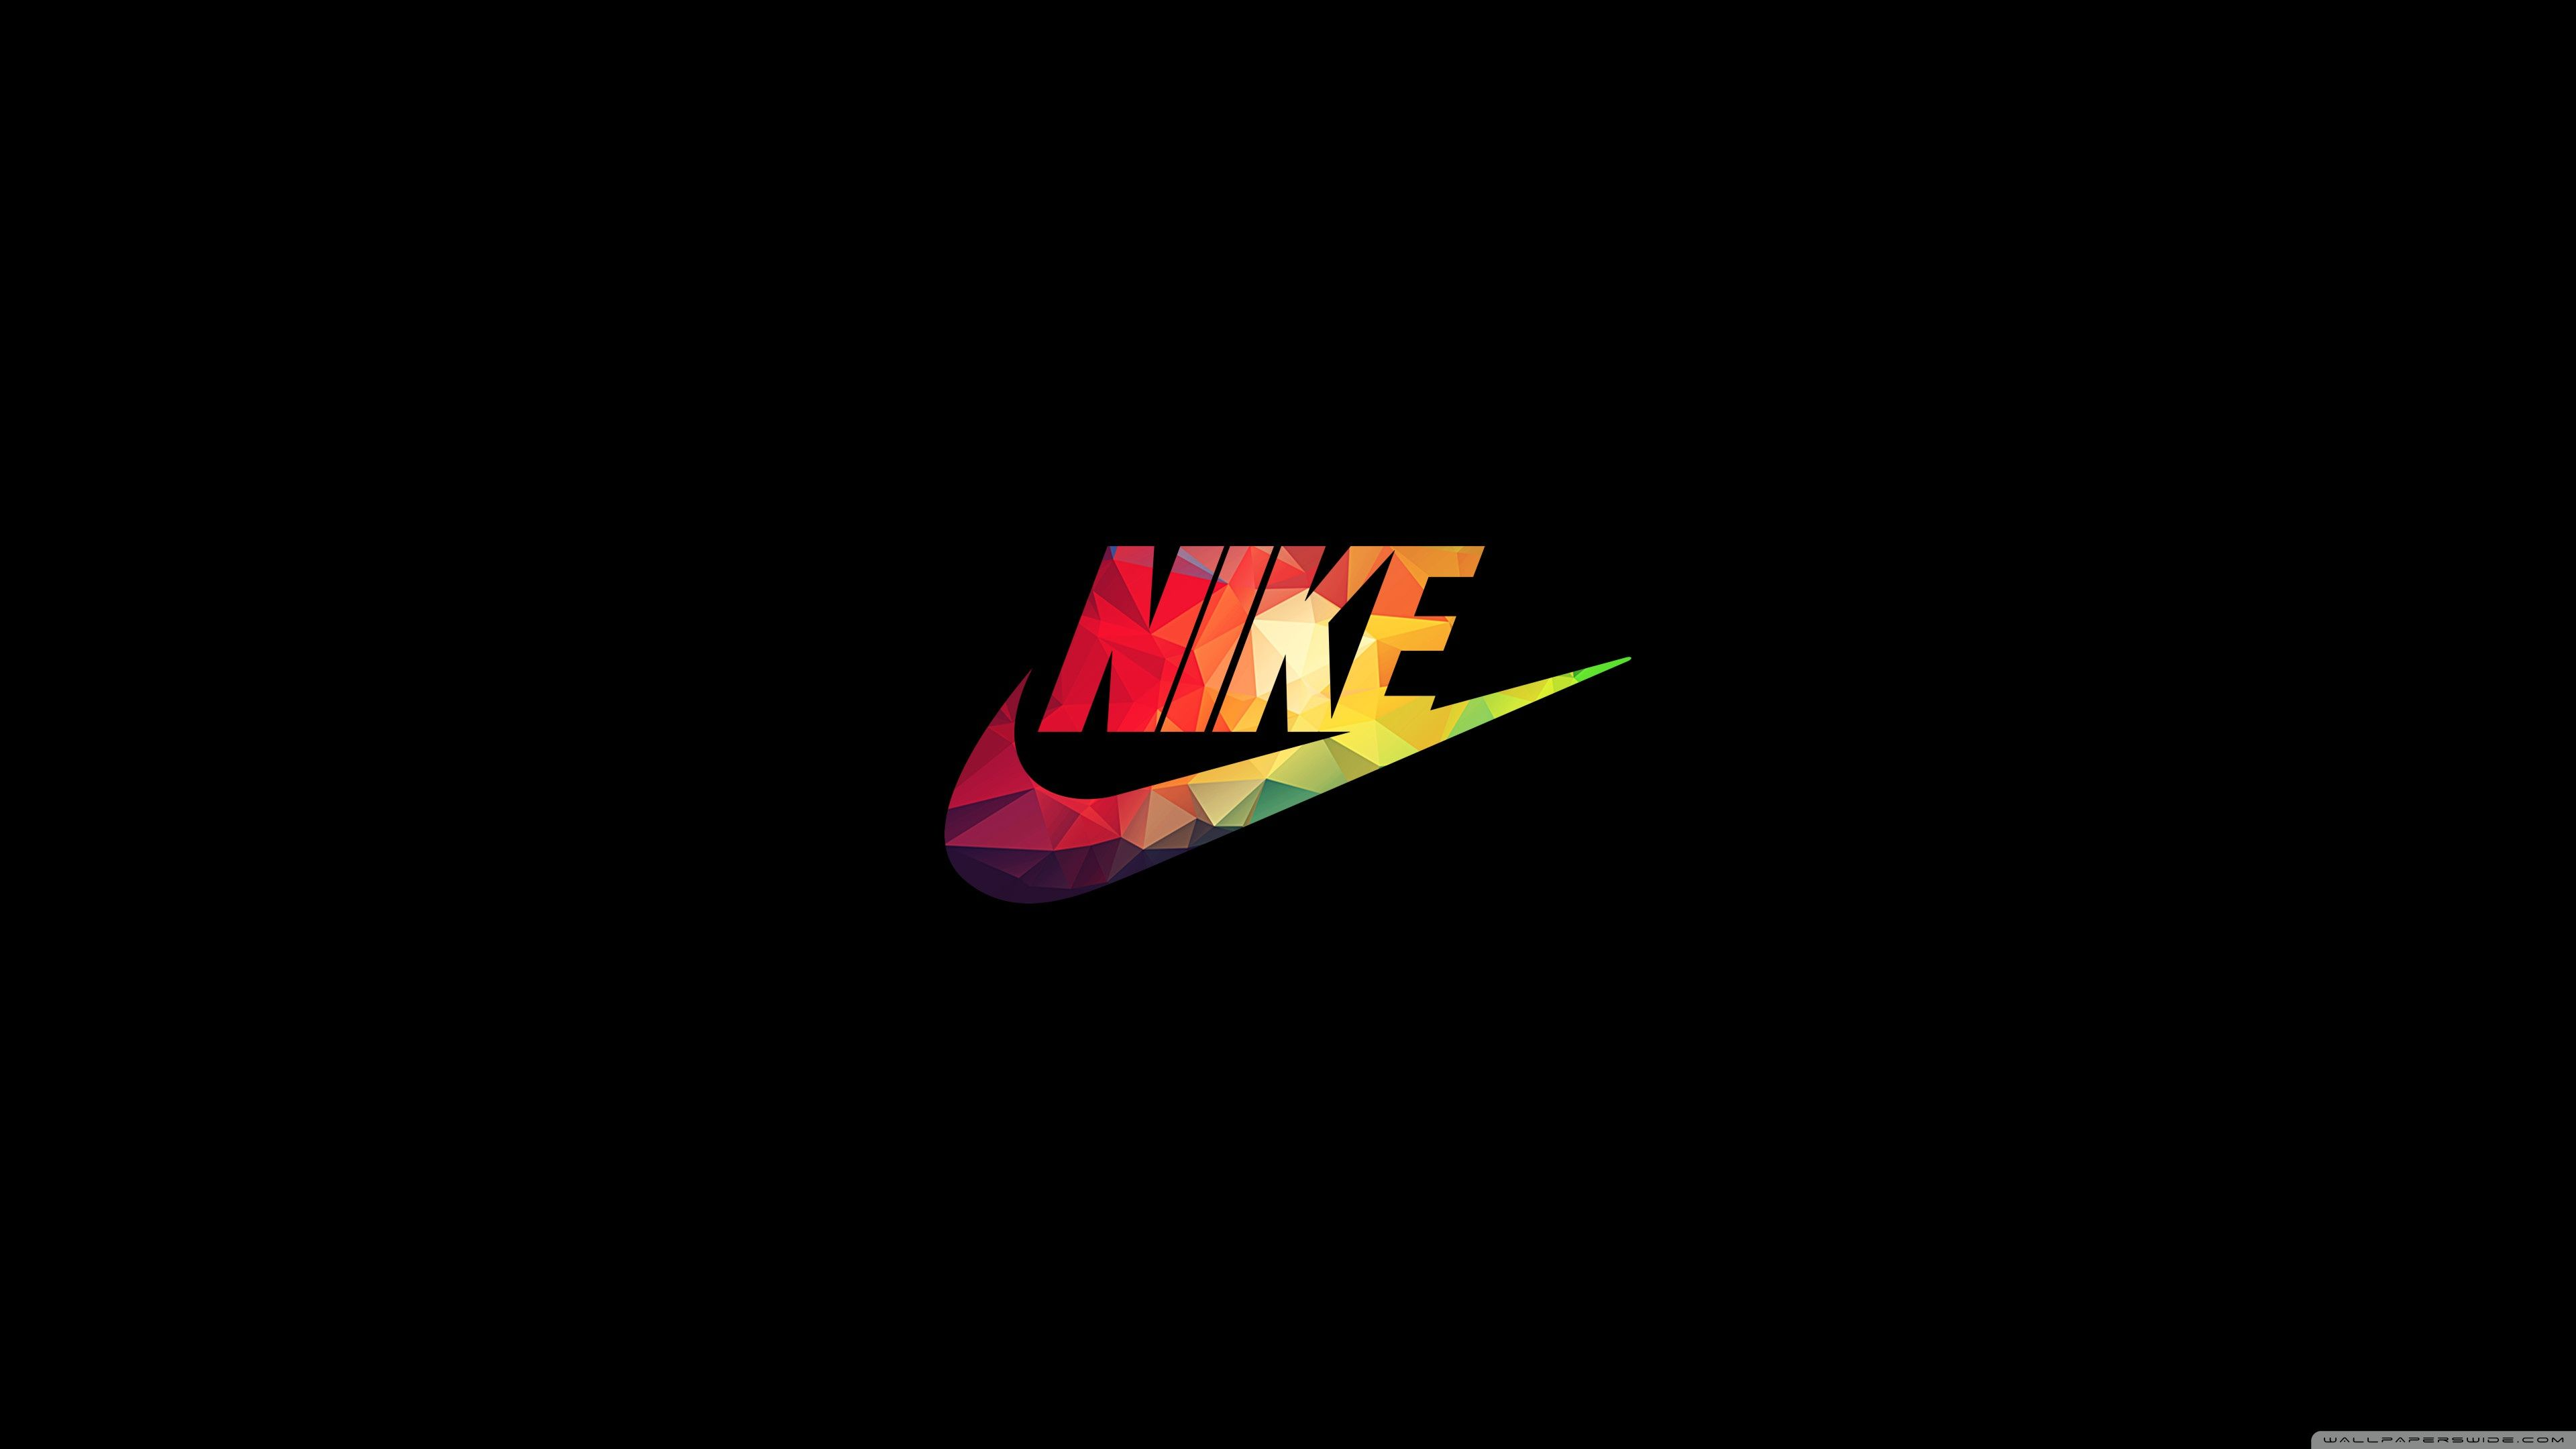 Nike Wallpapers.